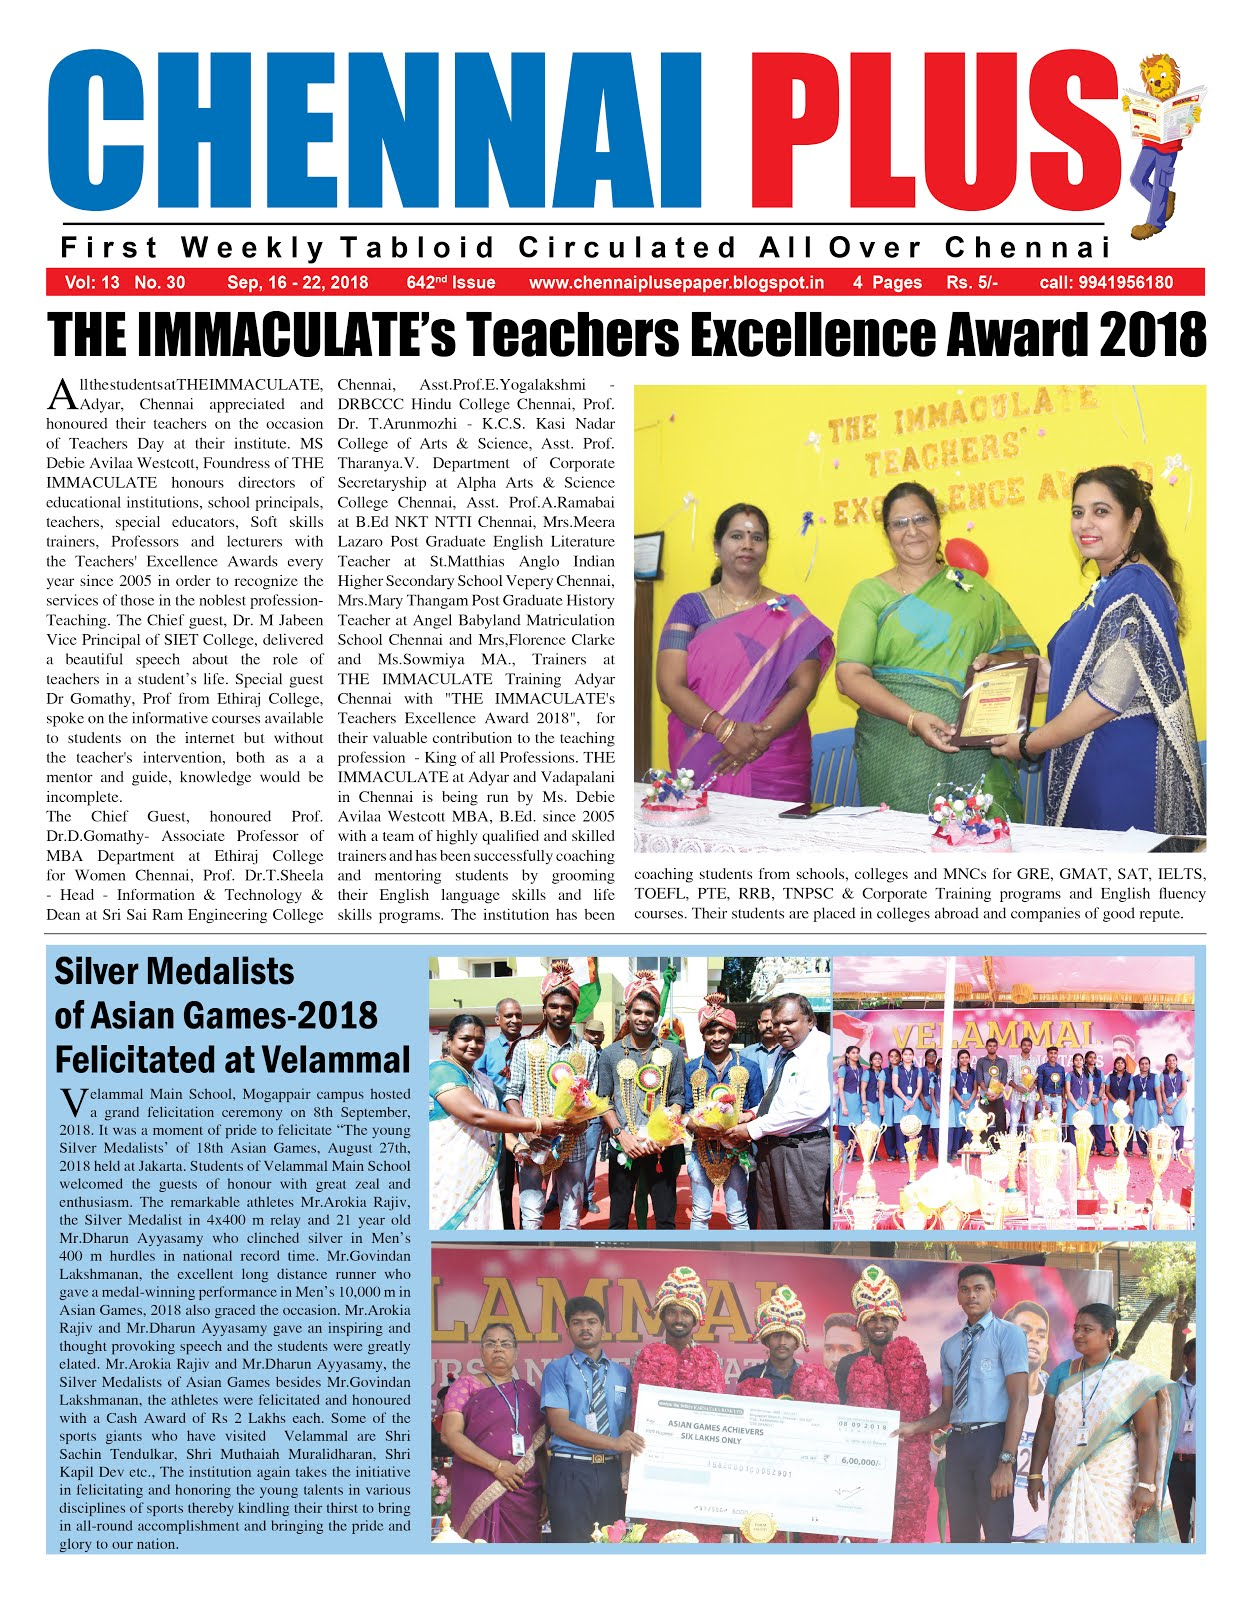 Chennai Plus_16.09.2018_Issue